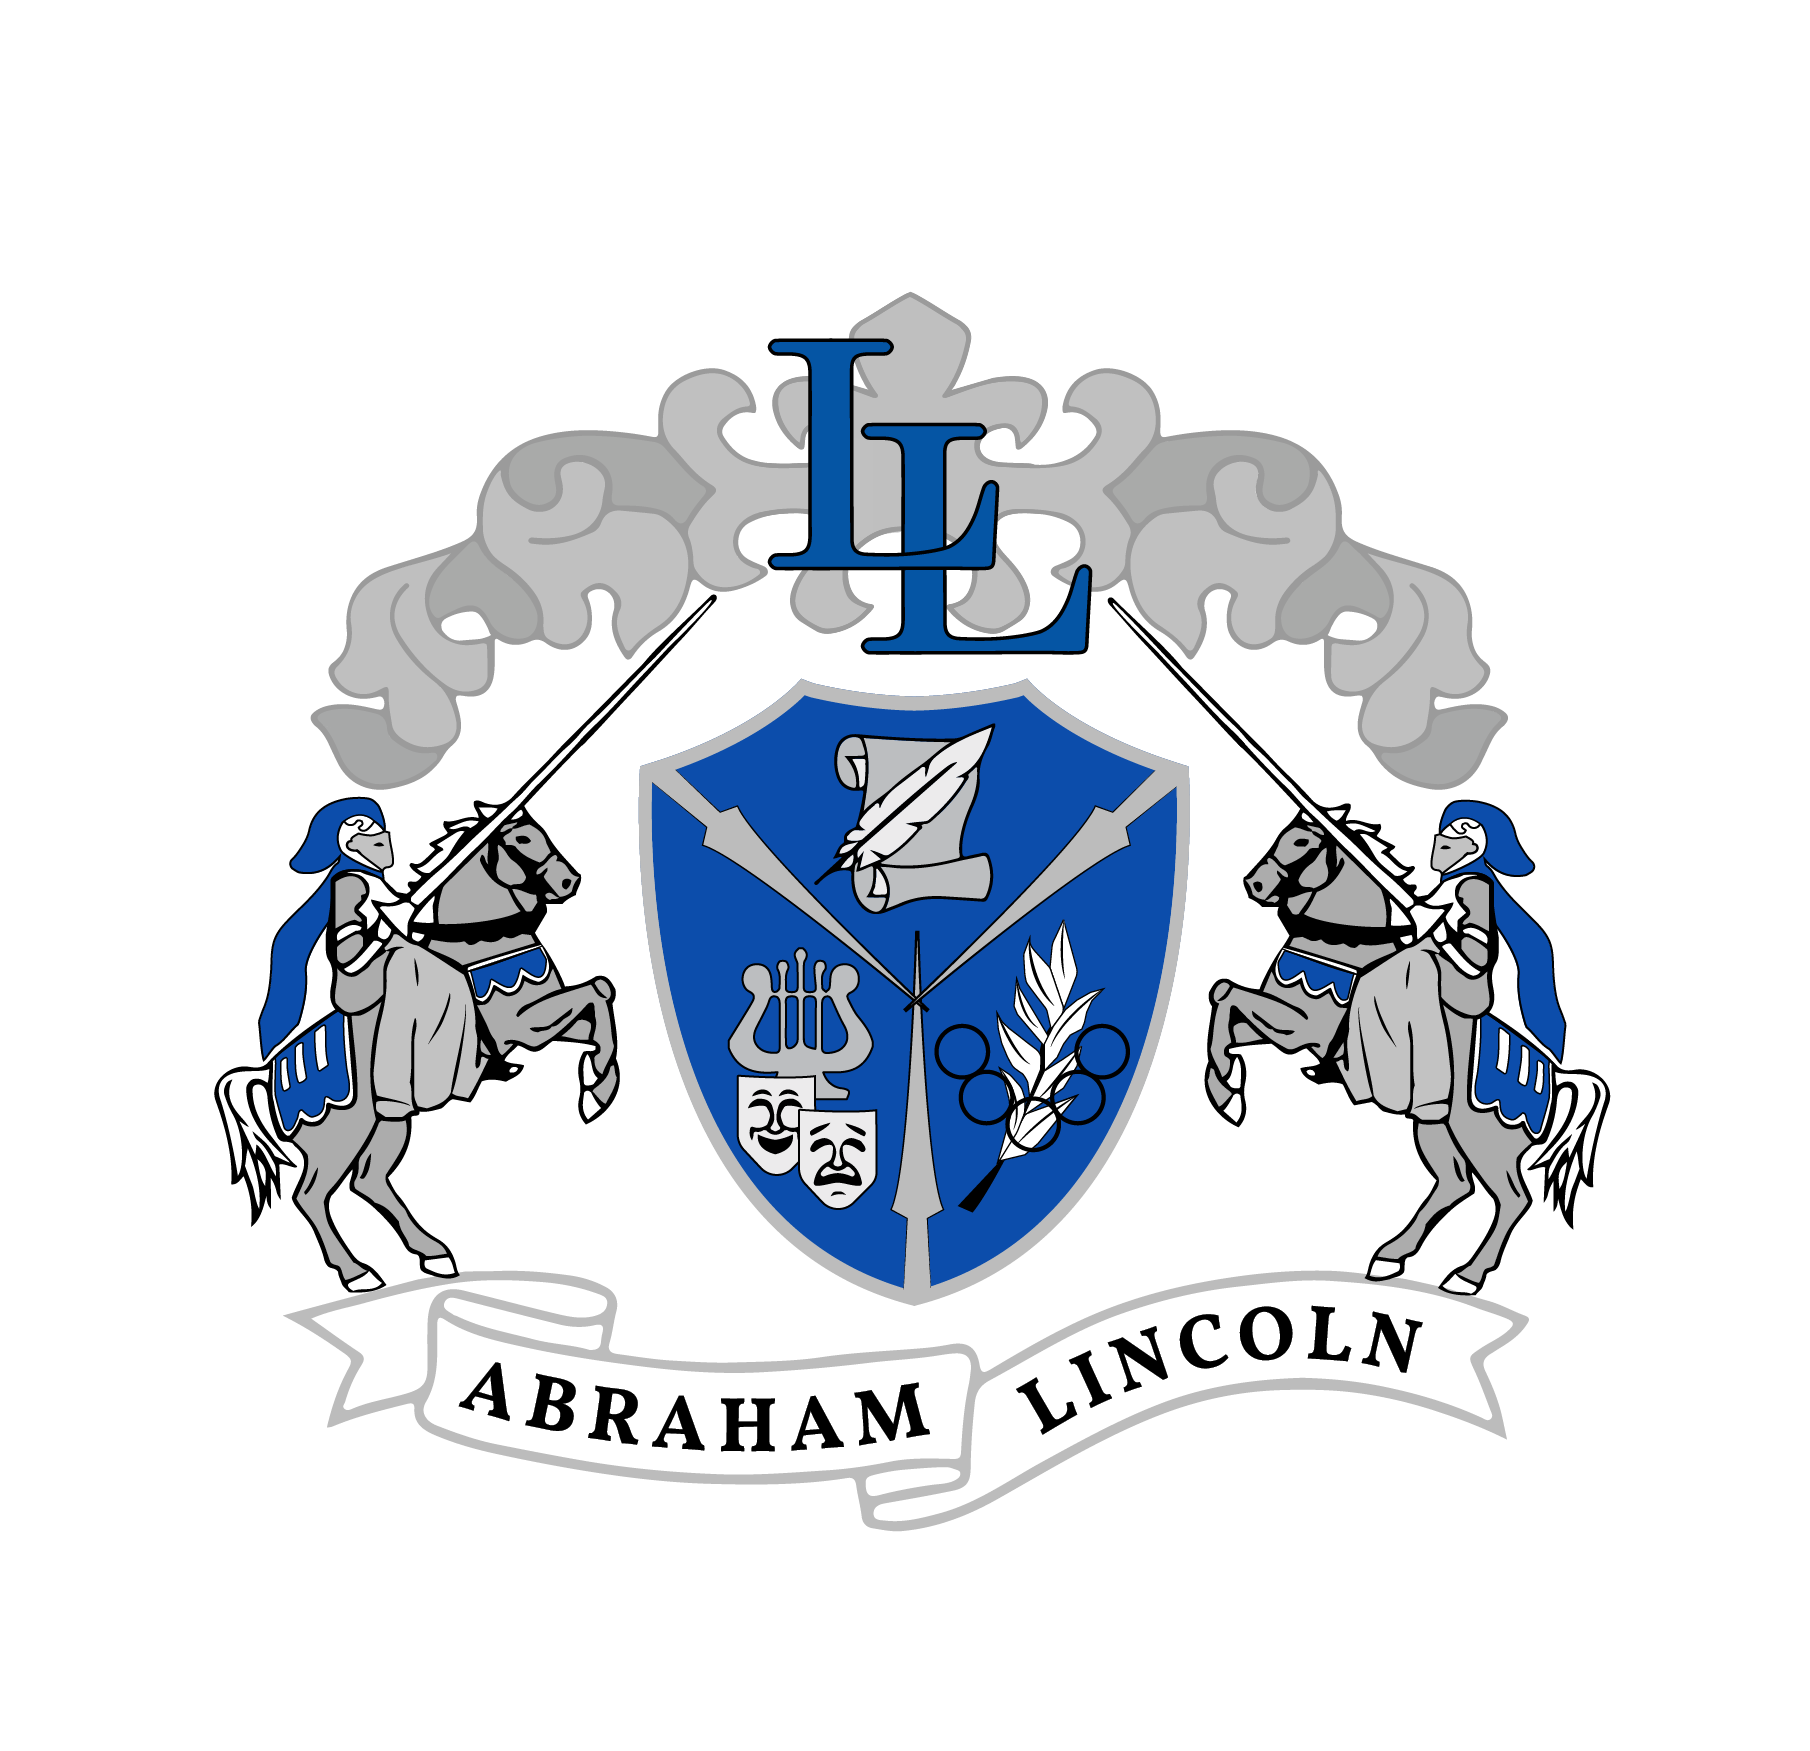 Abraham Lincoln High School Crest